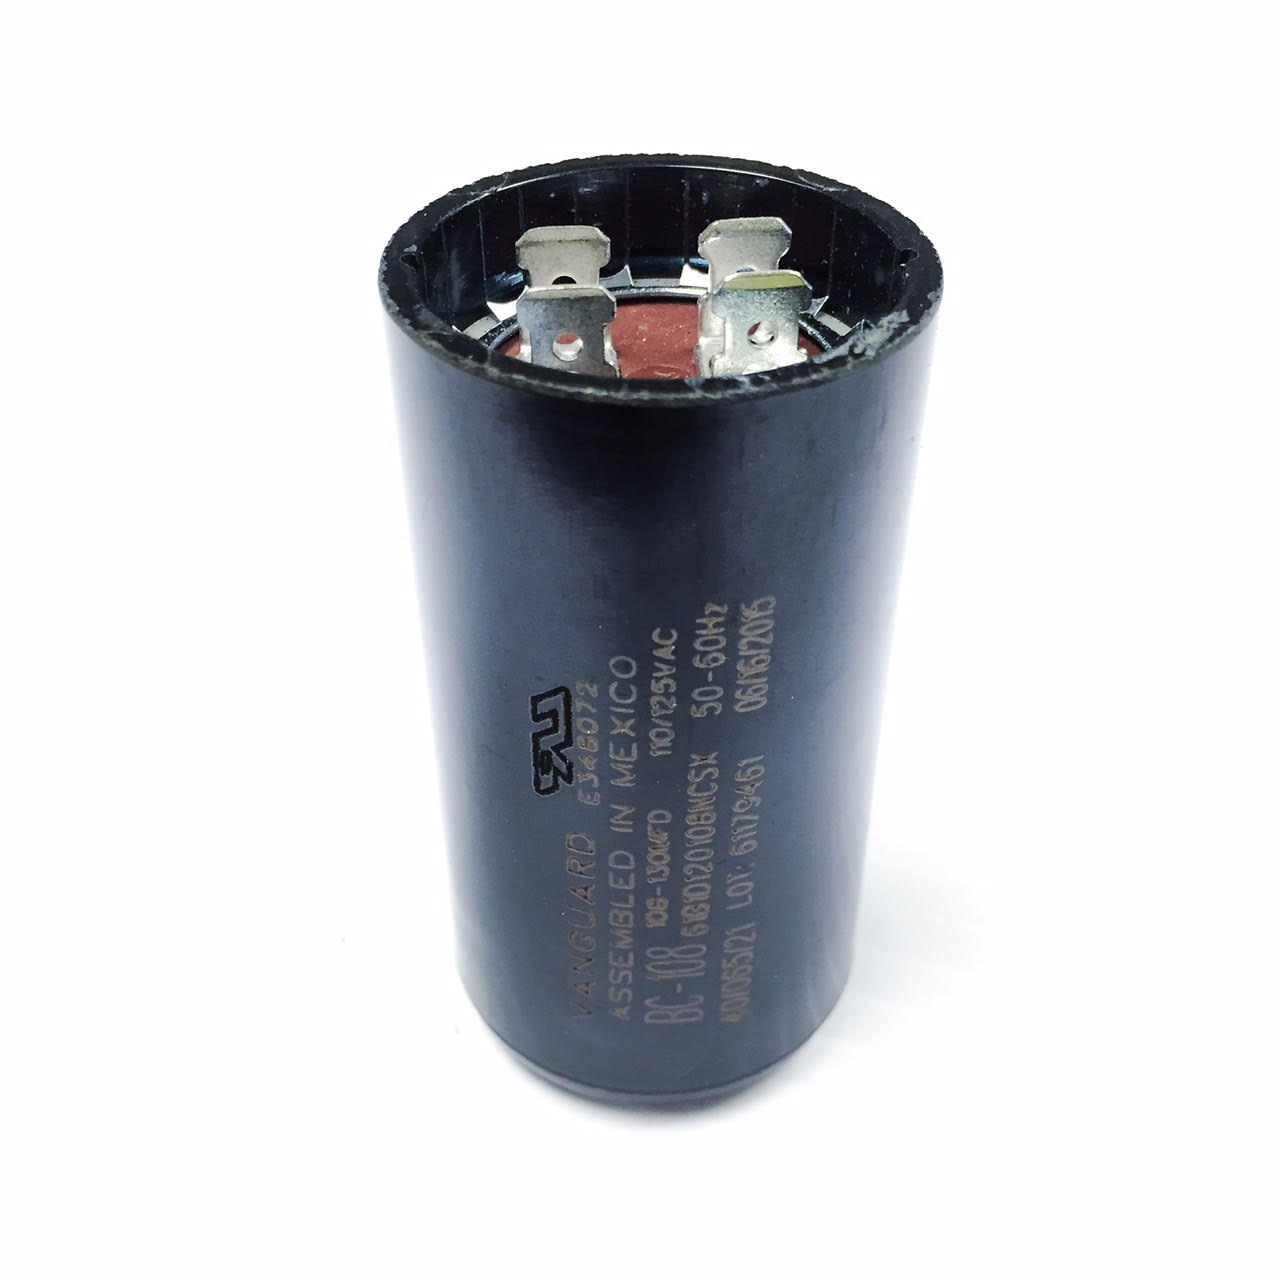 BC-108 Vanguard Start Capacitor, Mfd 108-130 uF